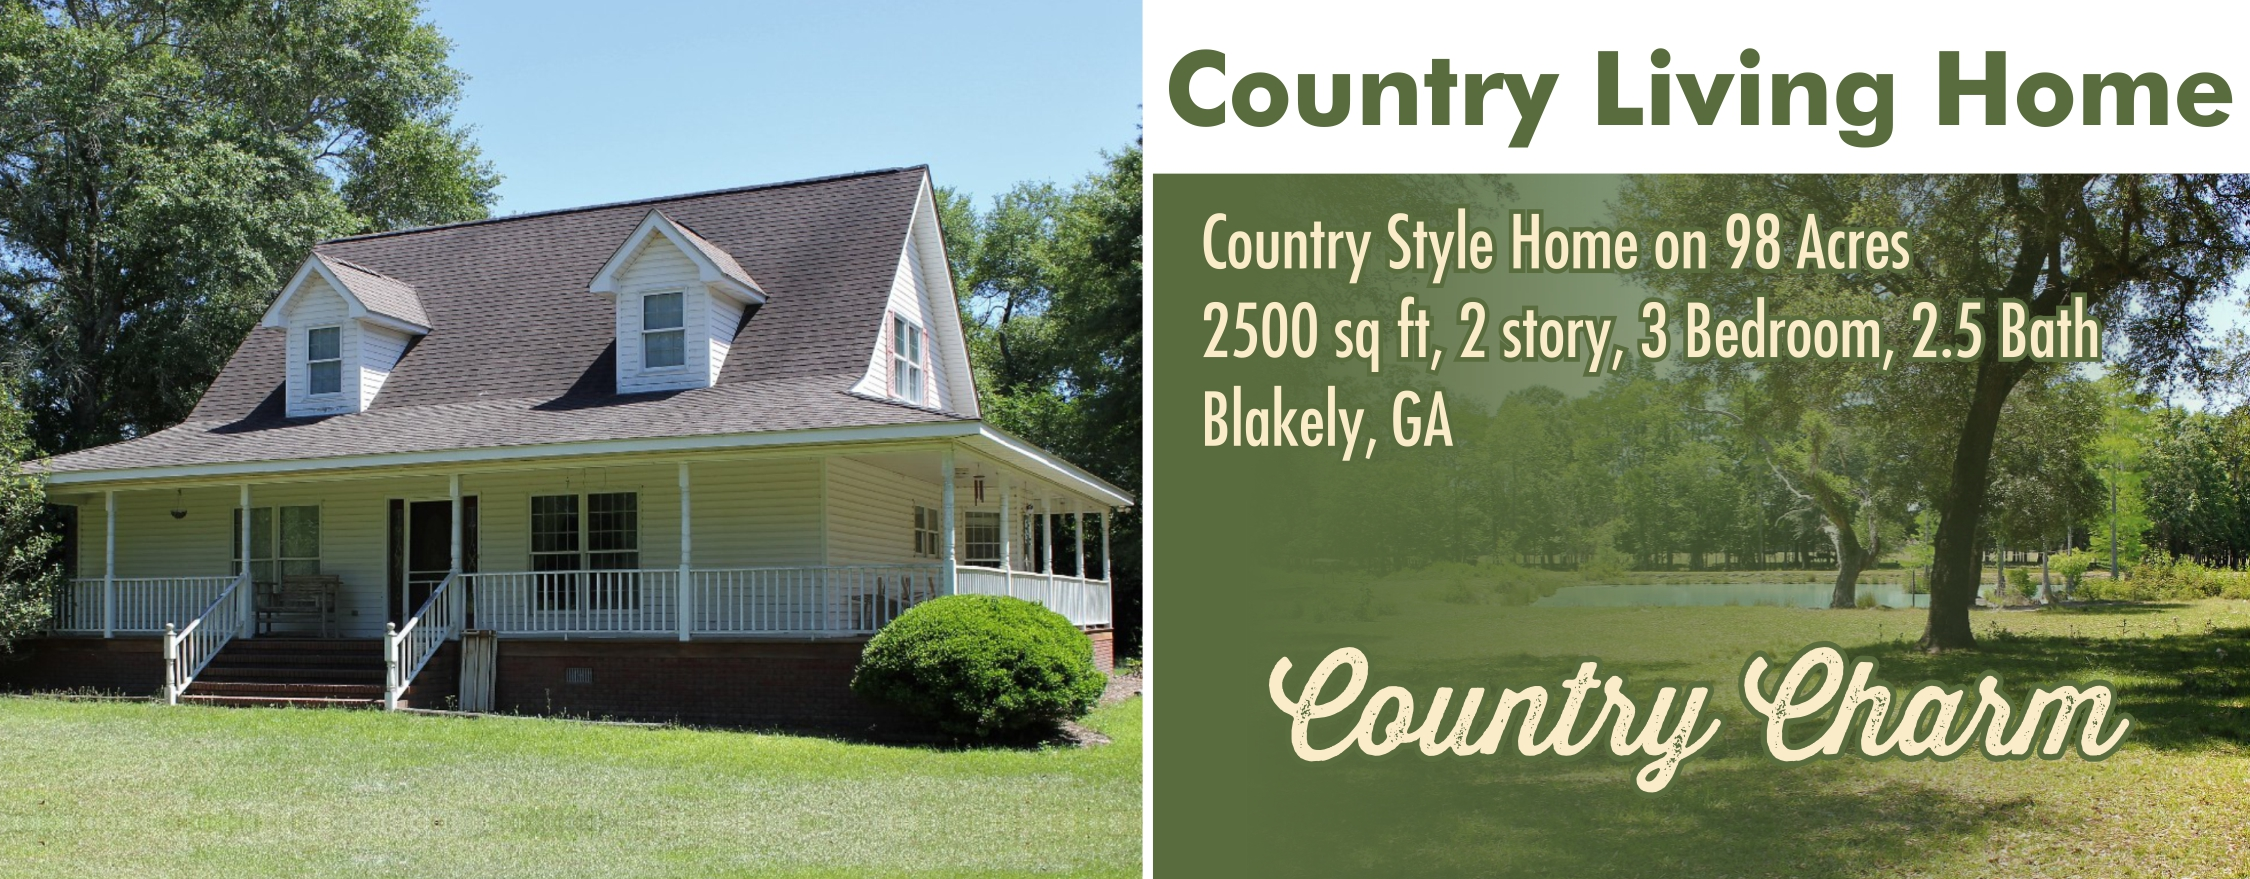 98 Acre Country Living